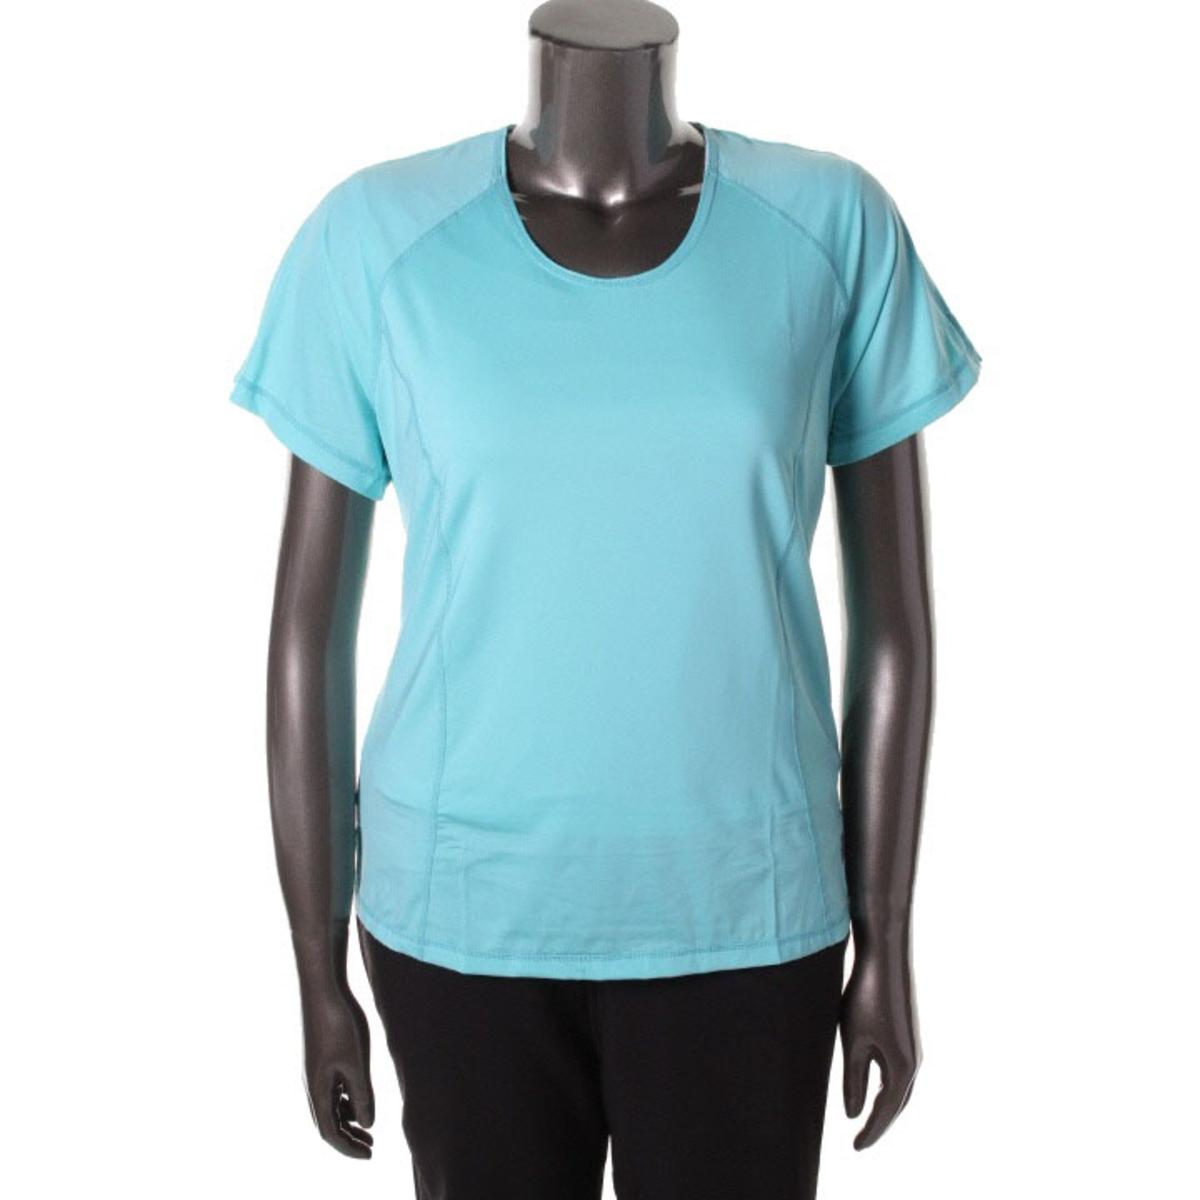 Live Life Large 6654 Womens Moisture Wicking Shirts Tops